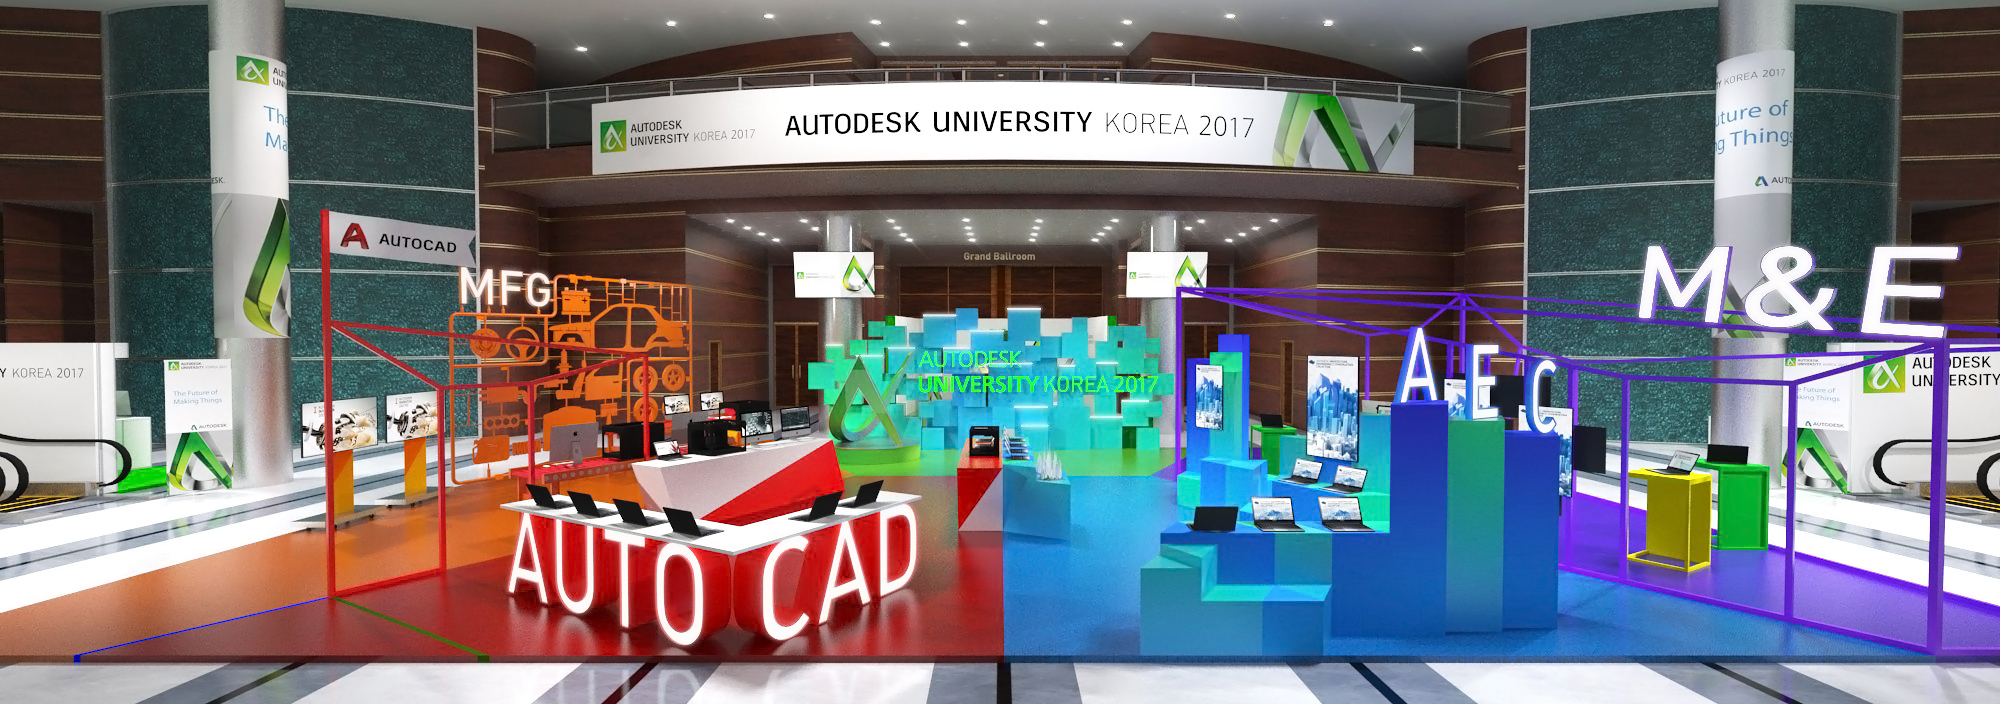 Autodesk University_EX _Rendering_11